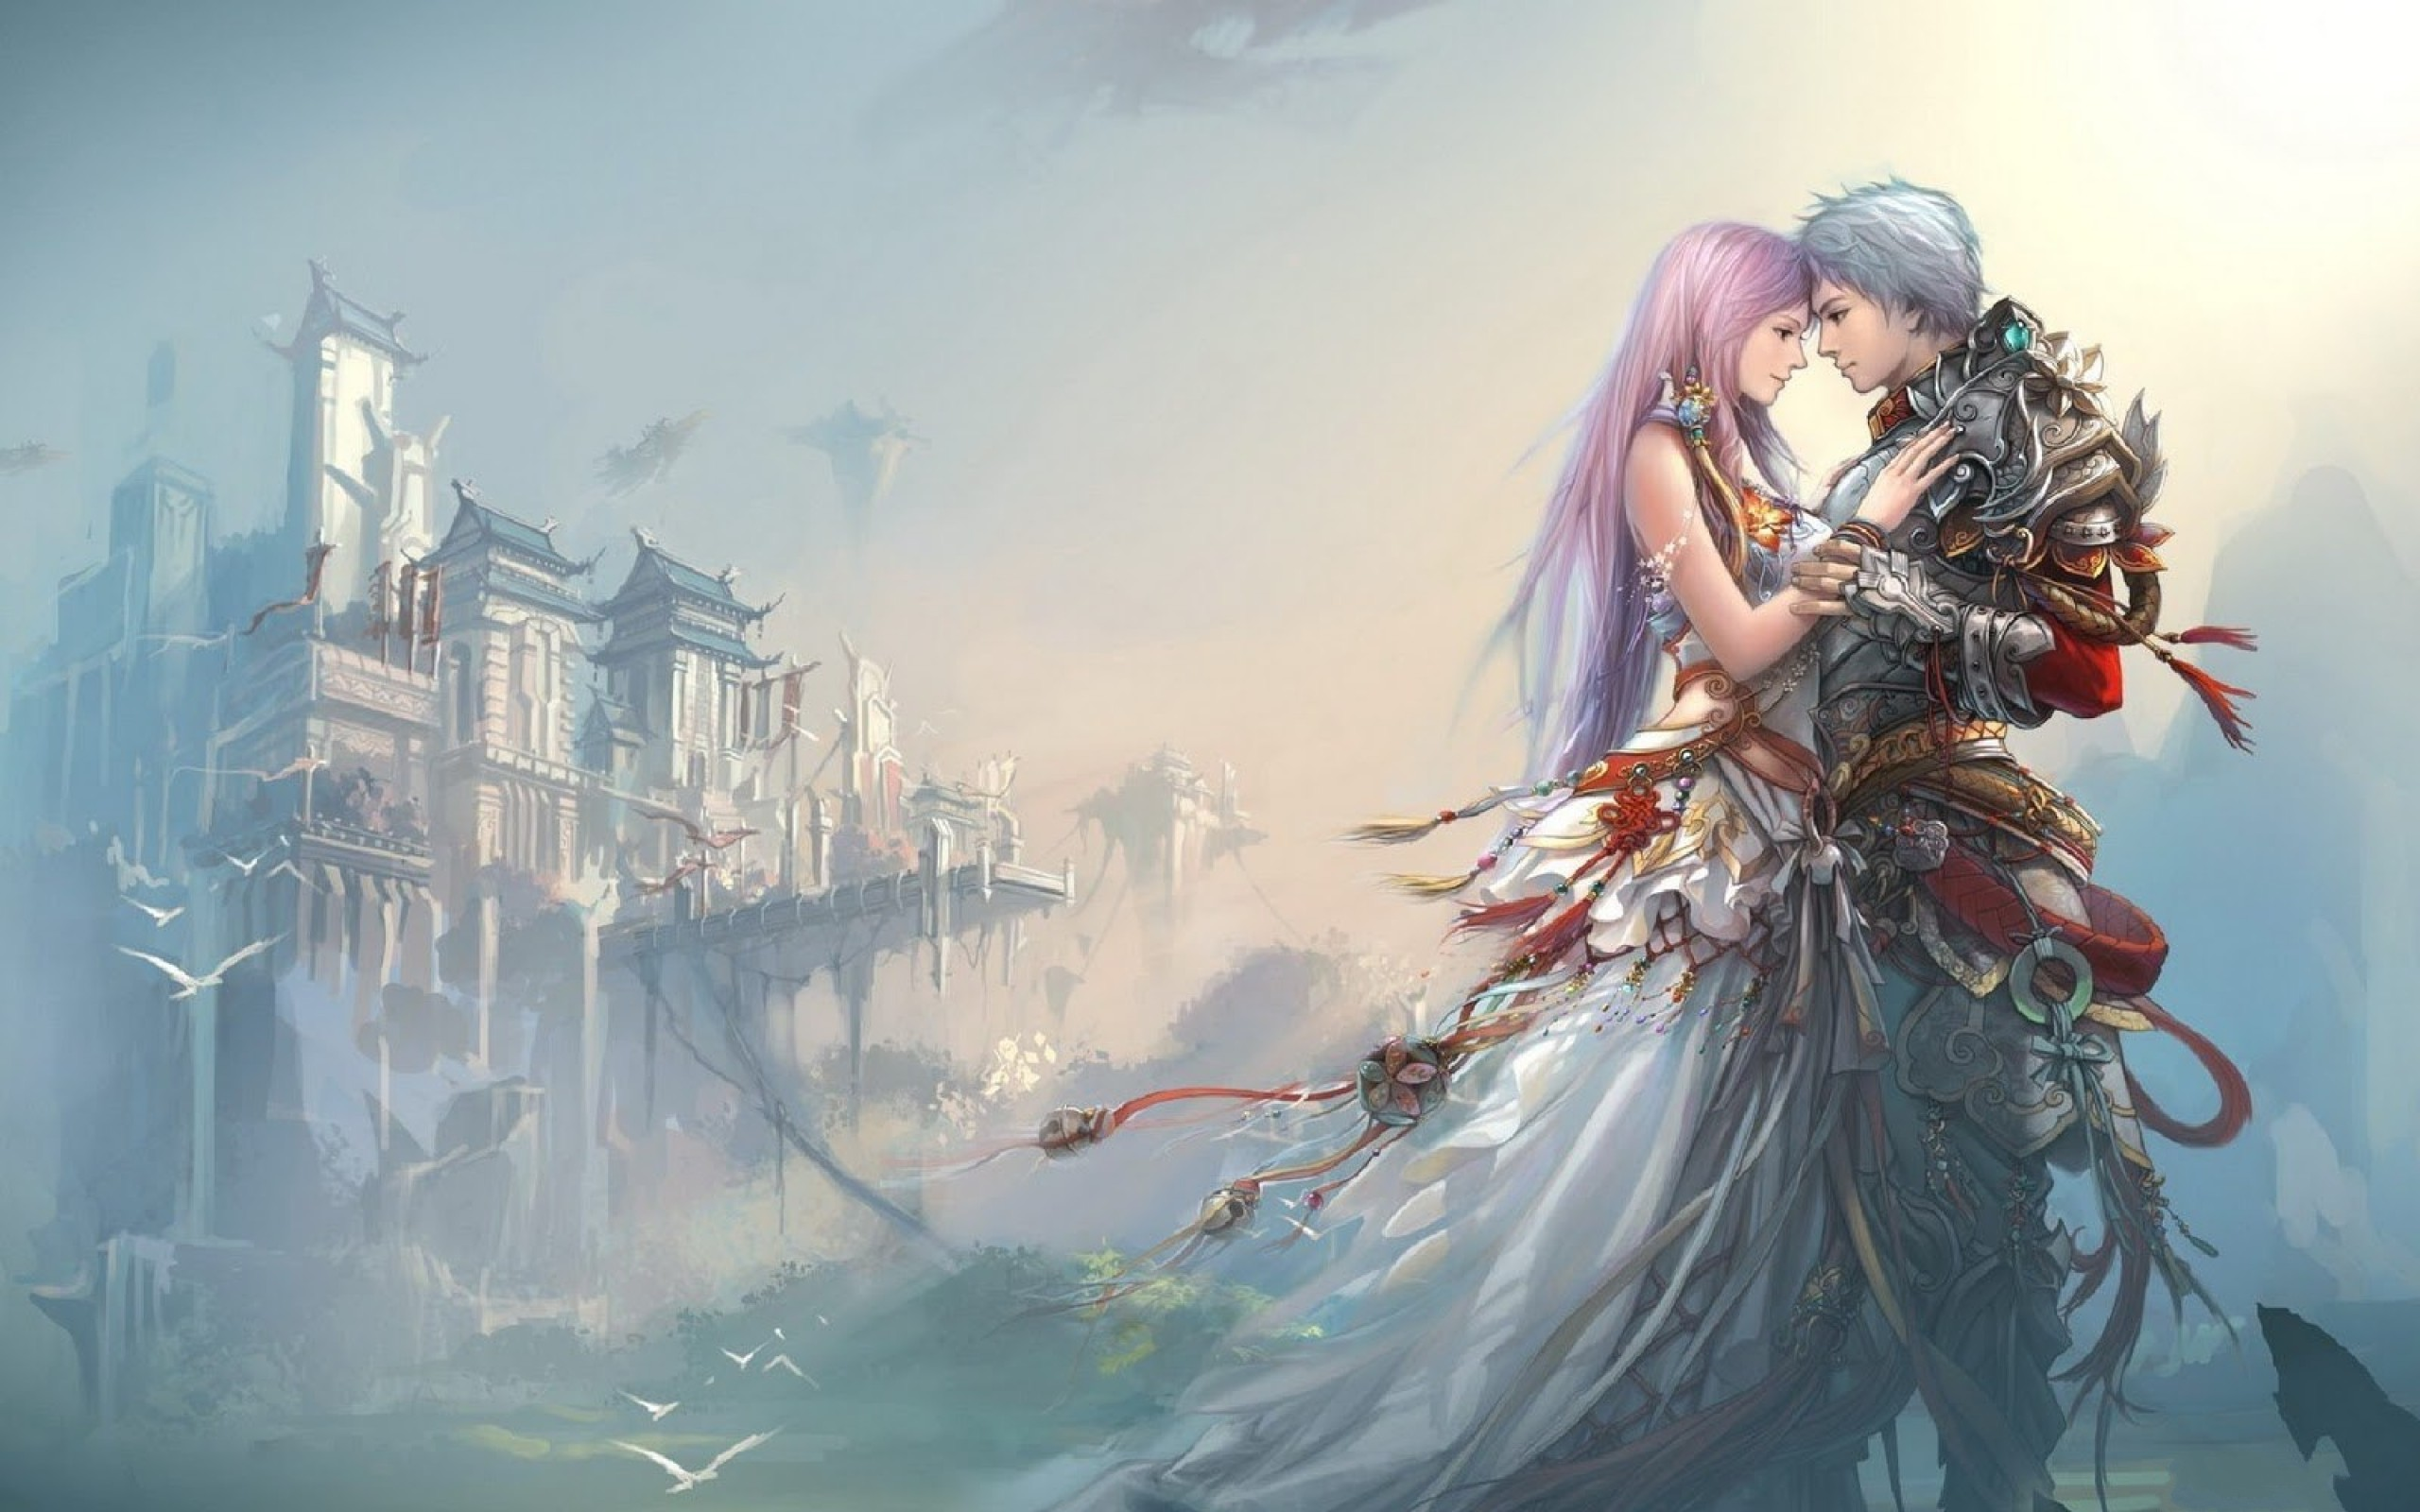 wallpaper.wiki-Free-Download-Cute-Anime-Couple-Background-PIC-WPE0010865